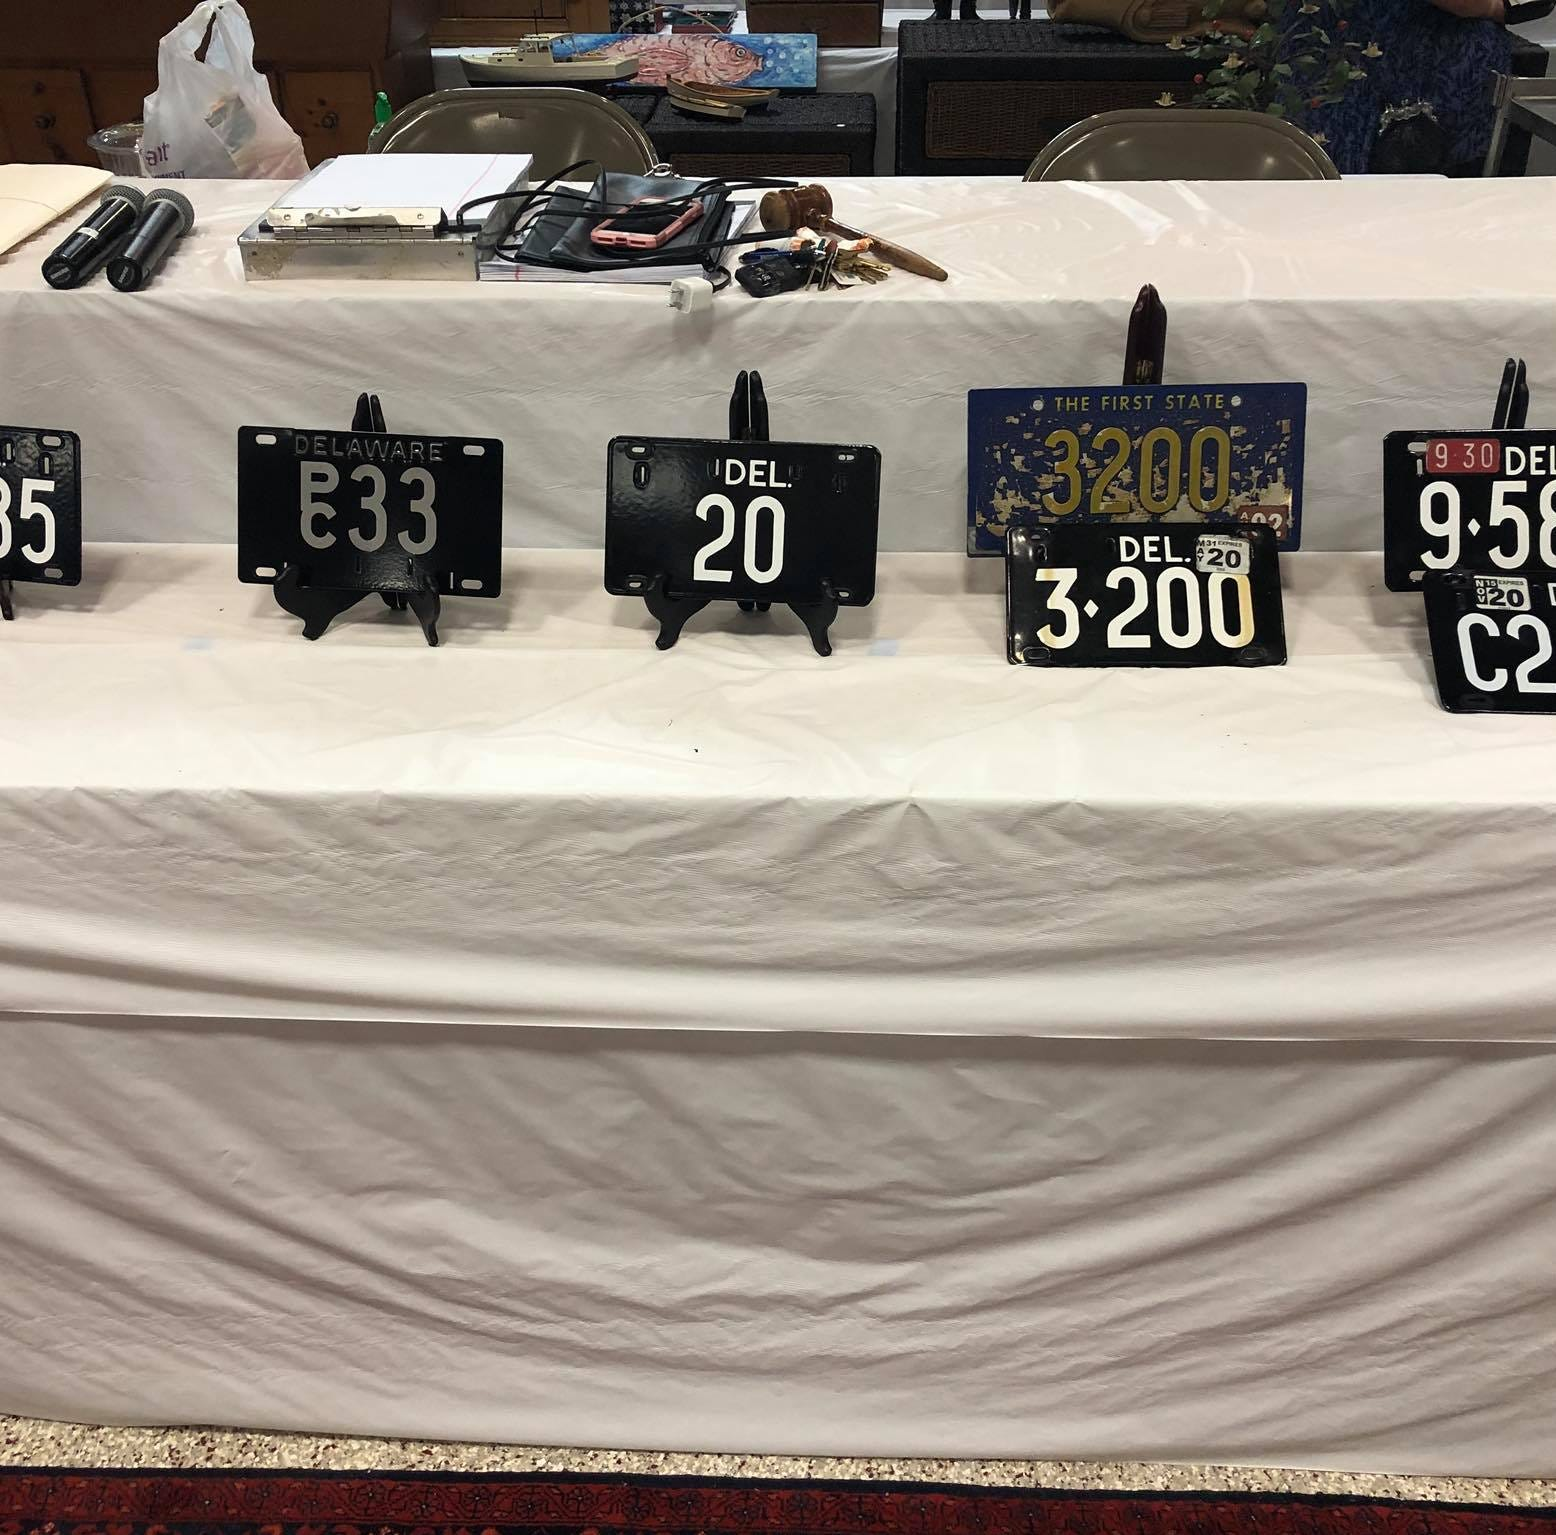 Delaware license plate 20 sells for $410,000 at Rehoboth Beach auction